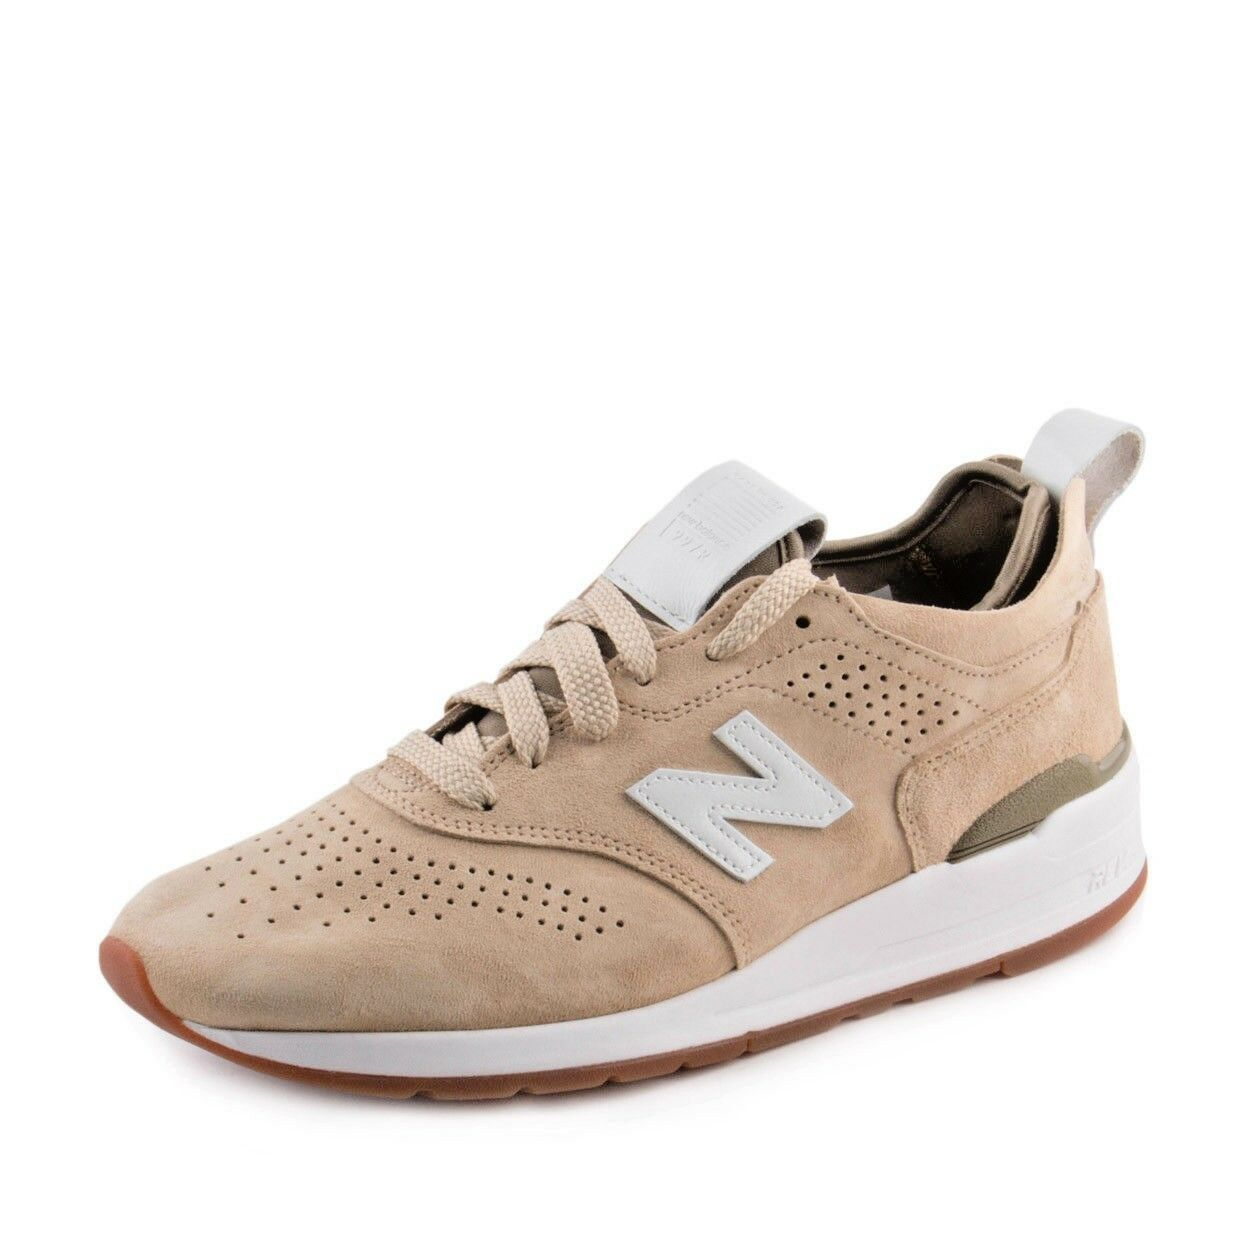 NEW BALANCE 997 M997DRA2 MADE IN USA  TAN   WHITE  SZ 6M   7.5W